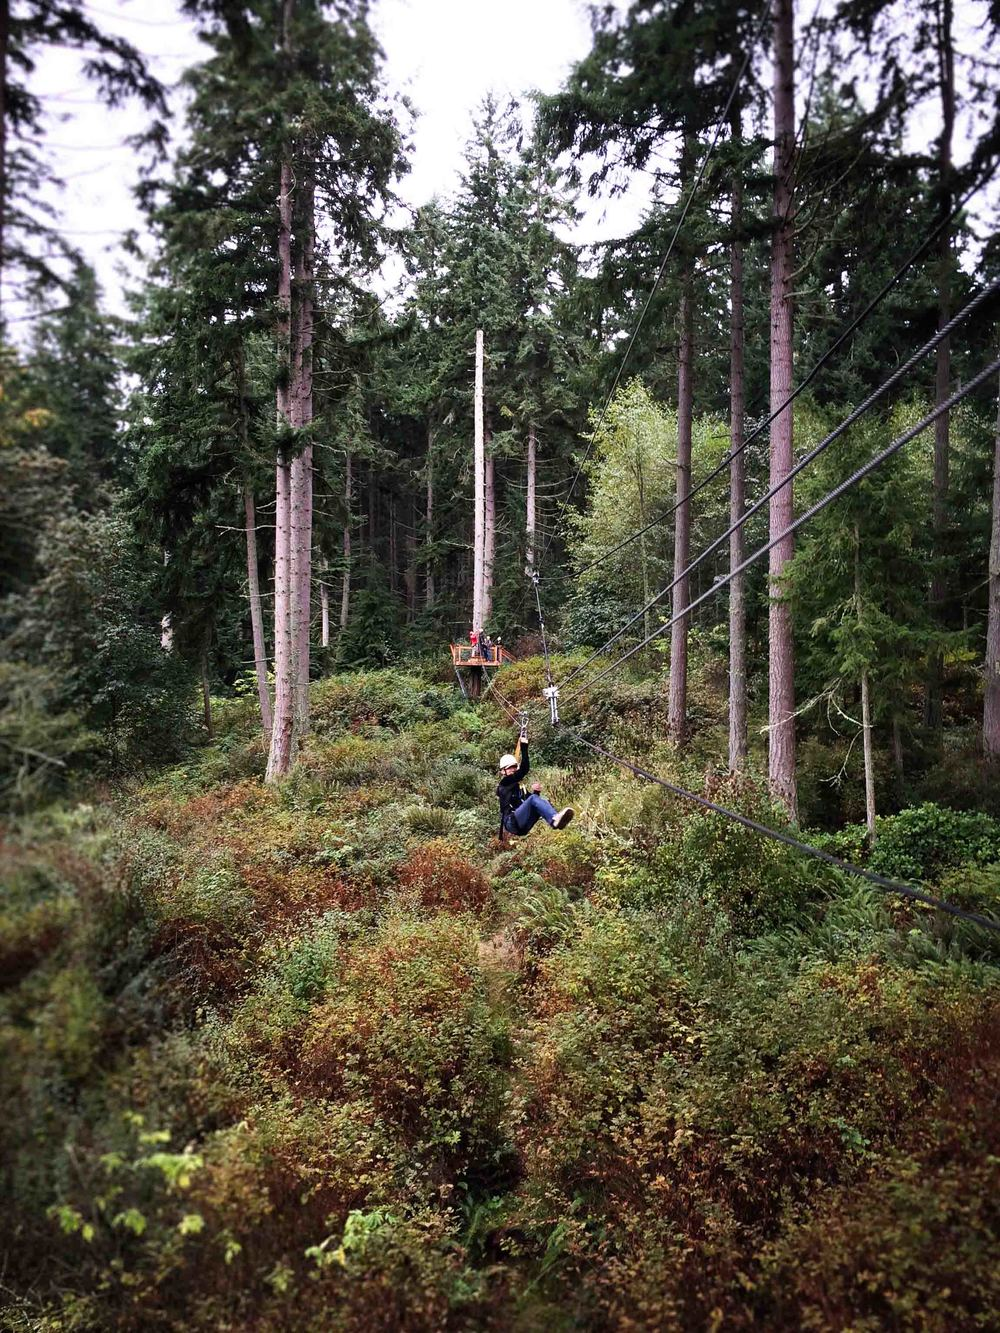 Zipping through the woods of Camano Island